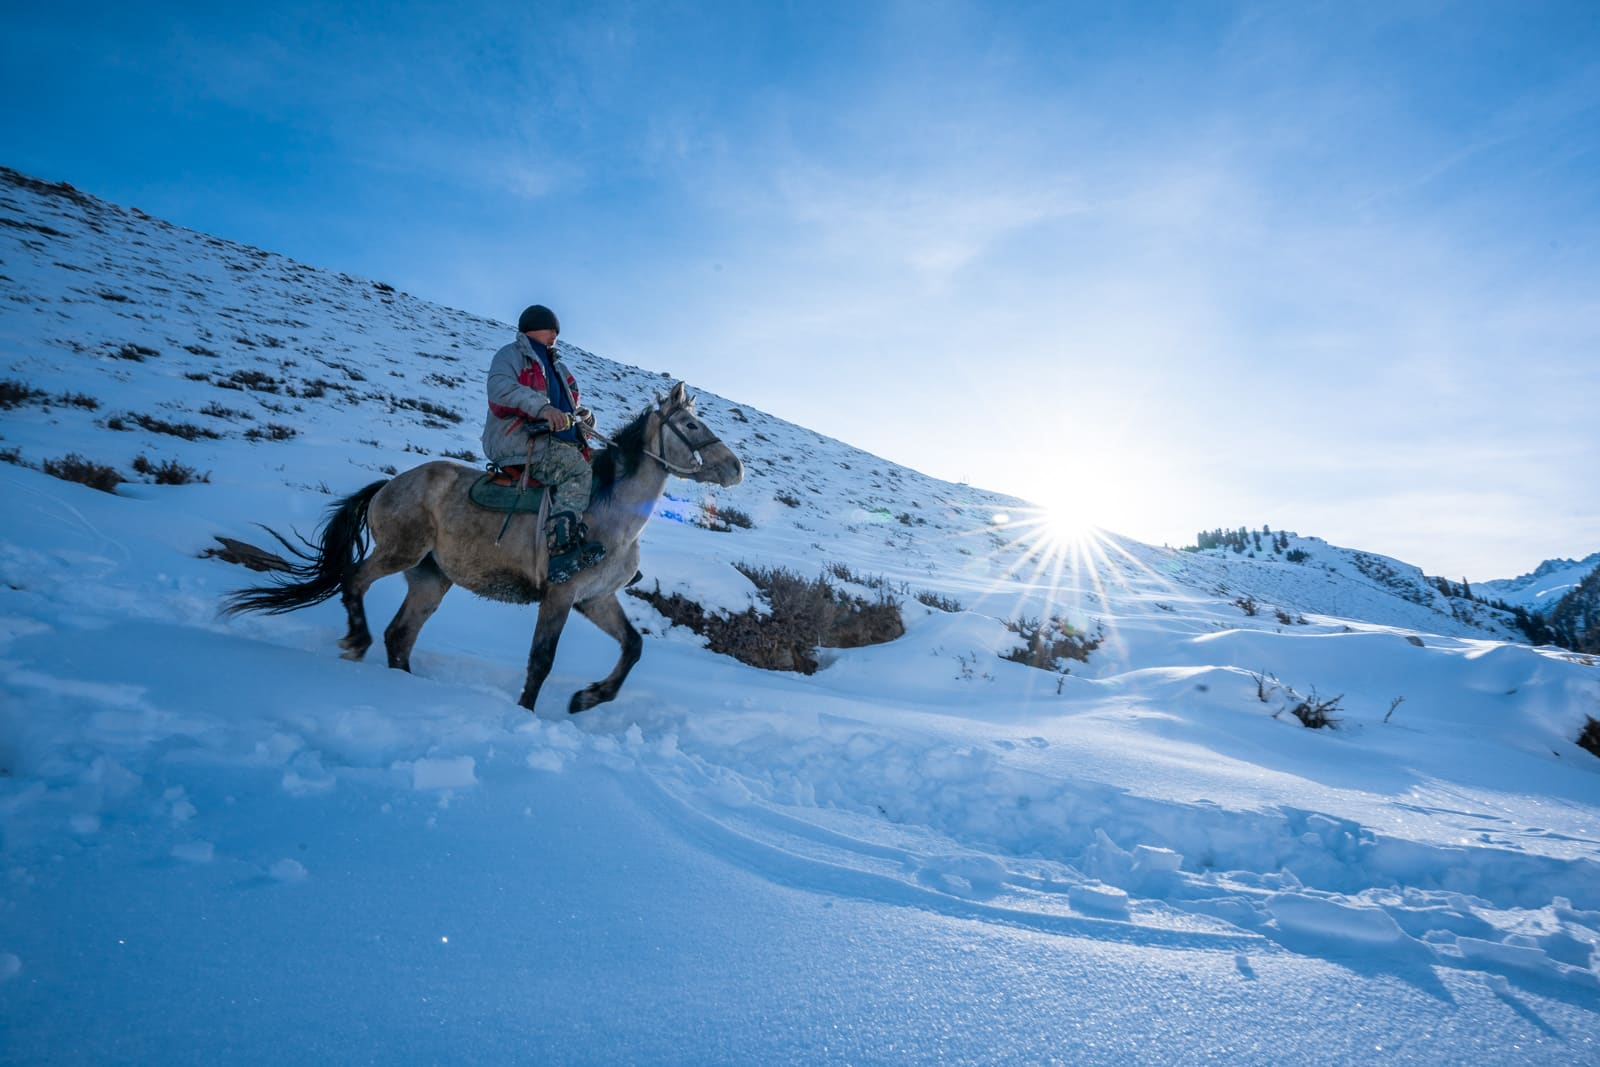 Horse riding in snow in Kyrgyzstan